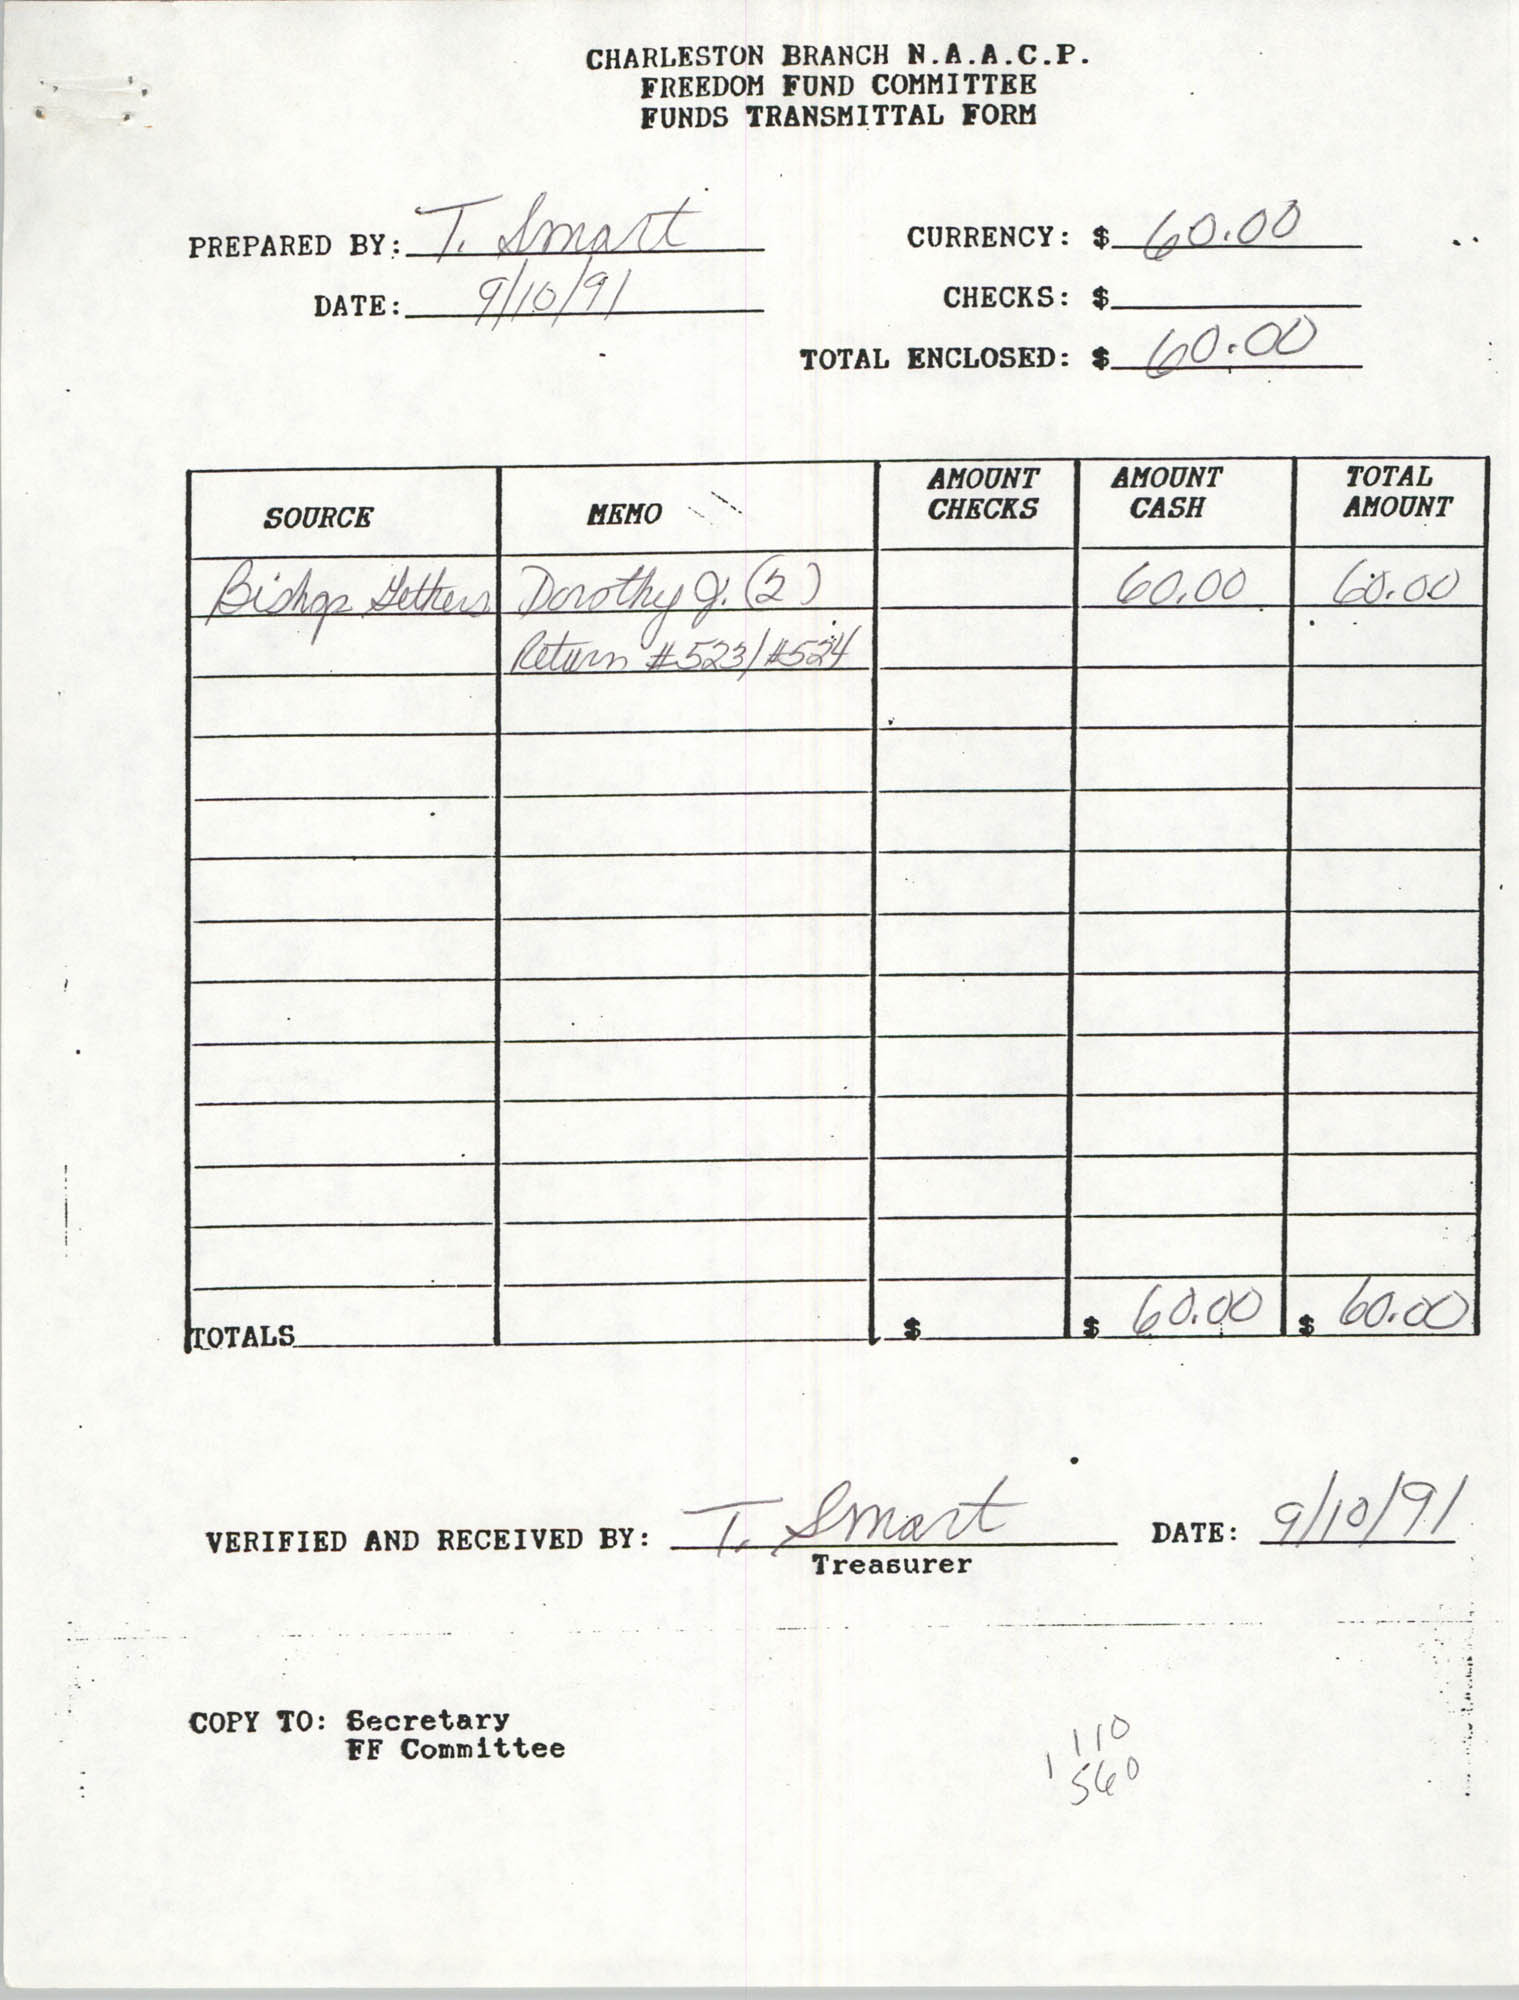 Charleston Branch of the NAACP Funds Transmittal Forms, September 1991, Page 21